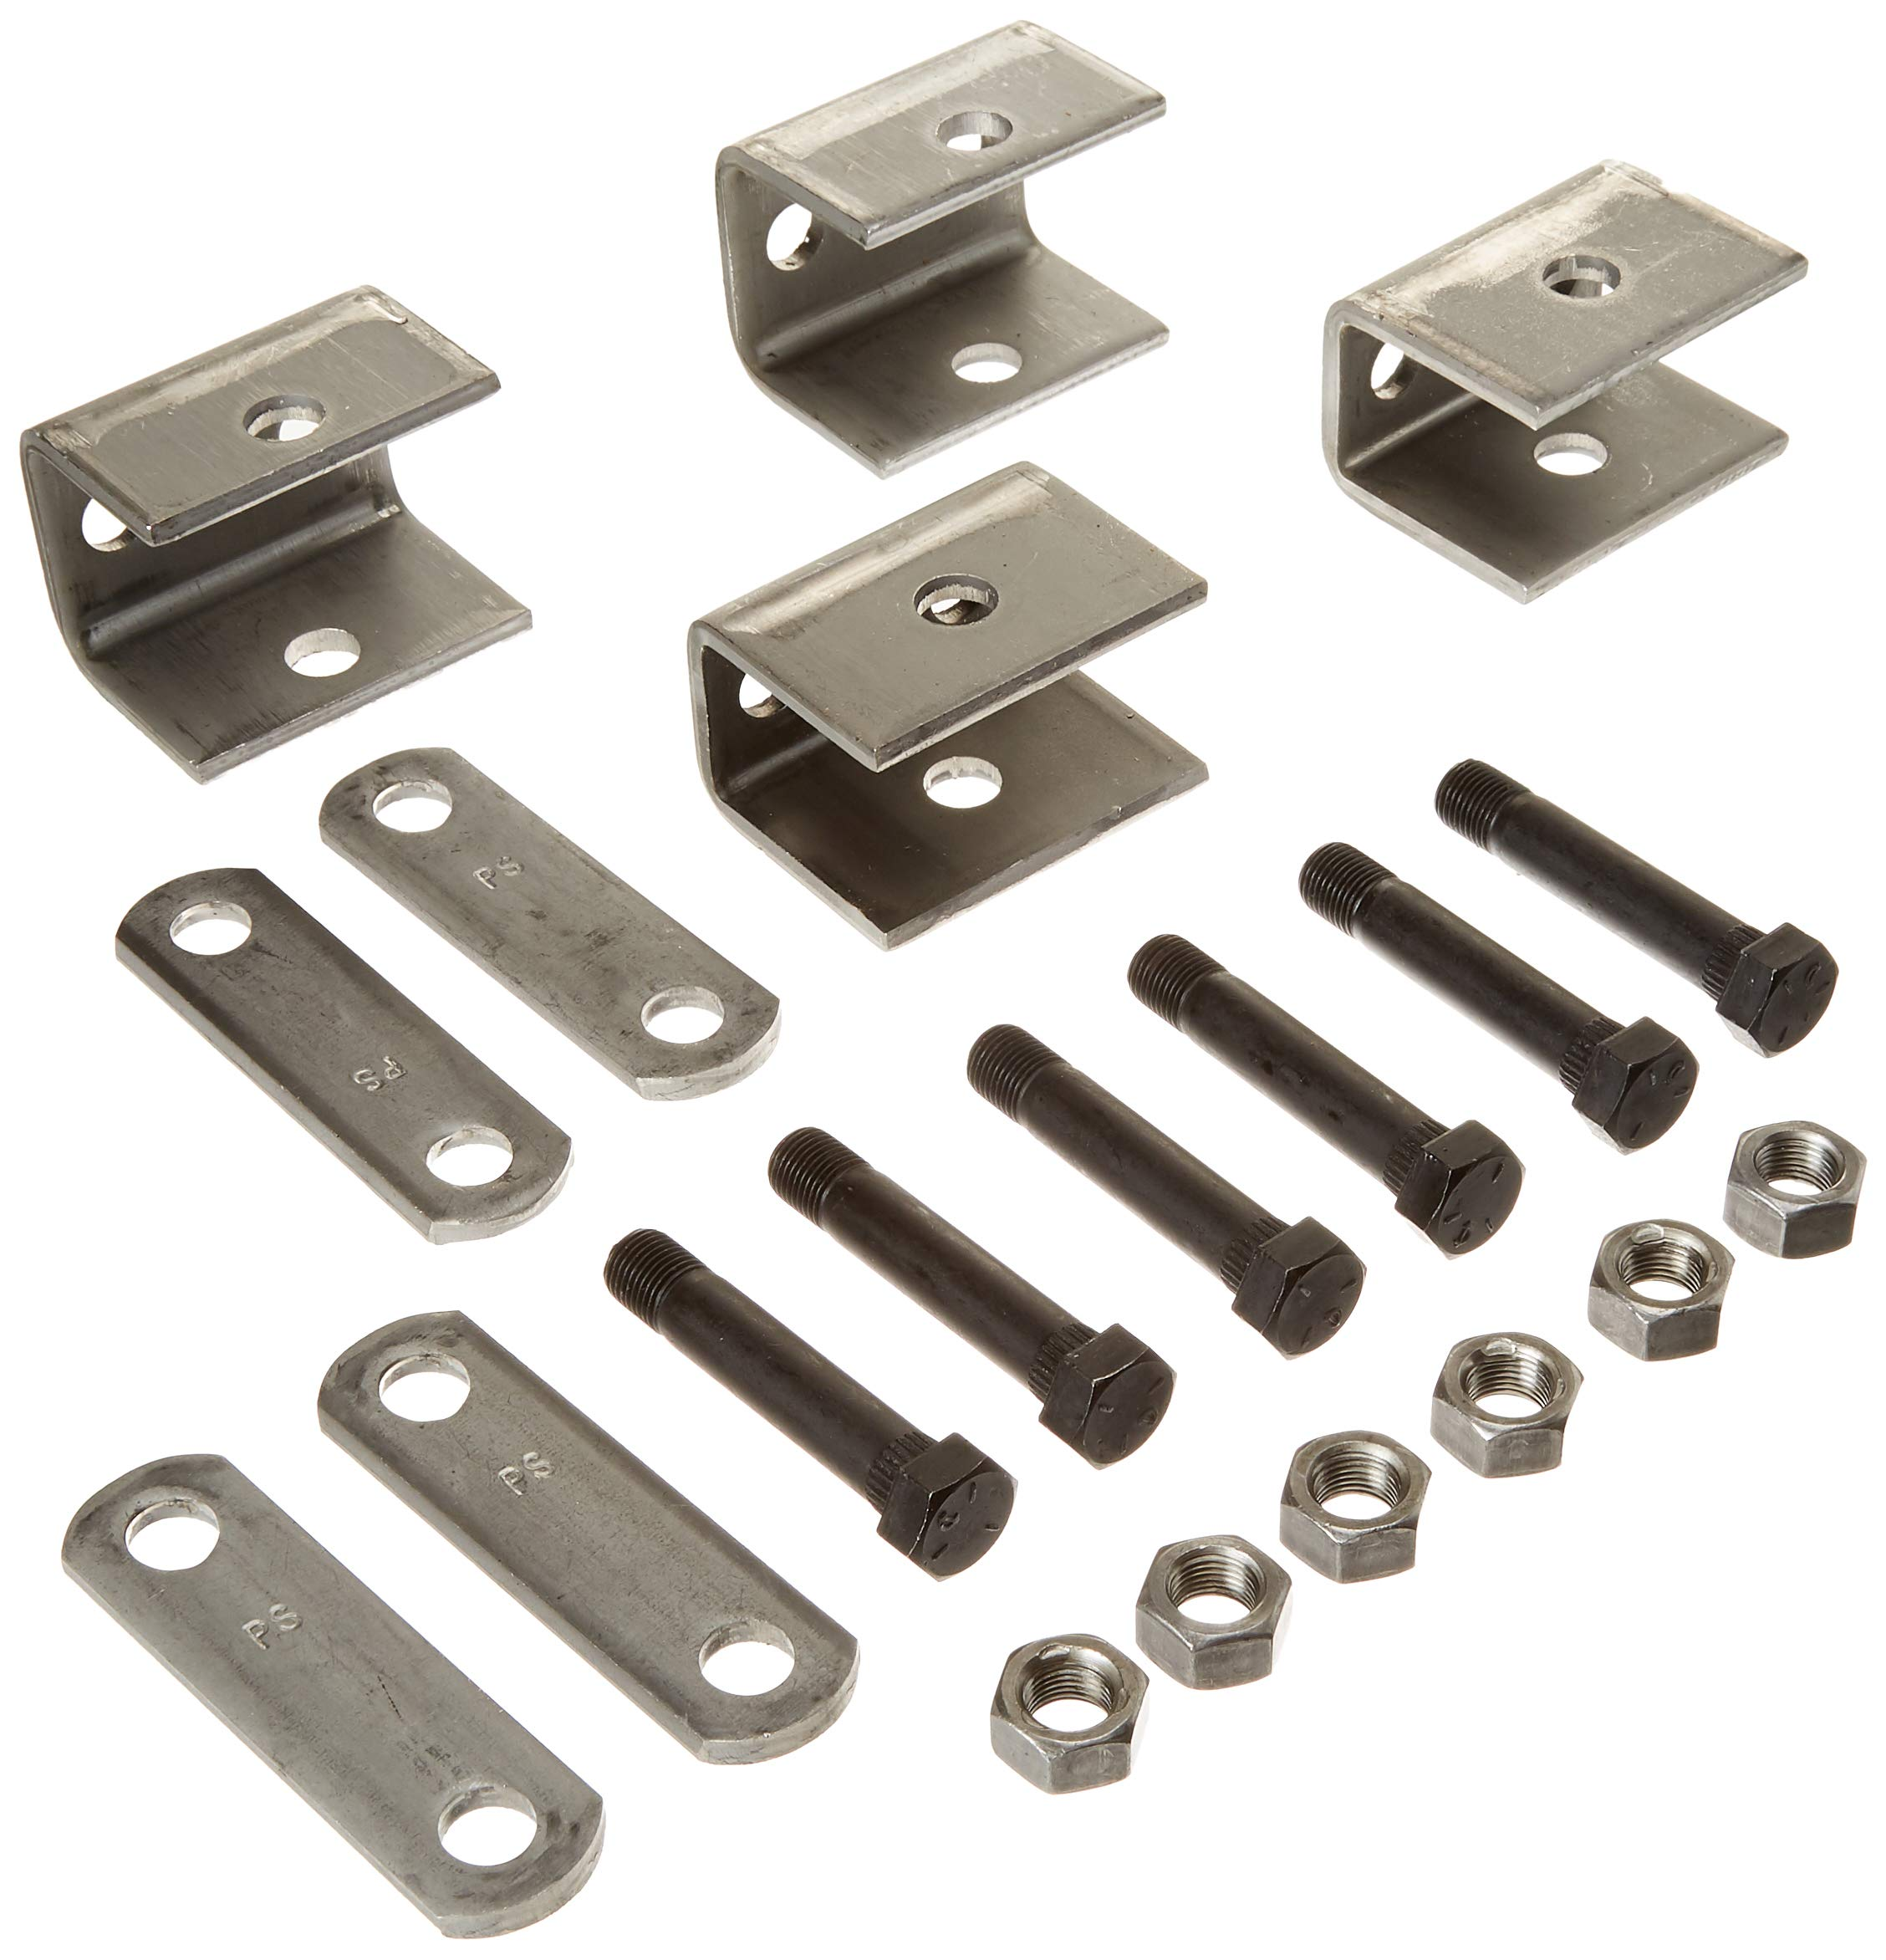 Rockwell American Single Axle Spring Hanger Kit - Fits 1.75'' Double Eye Springs by Rockwell American